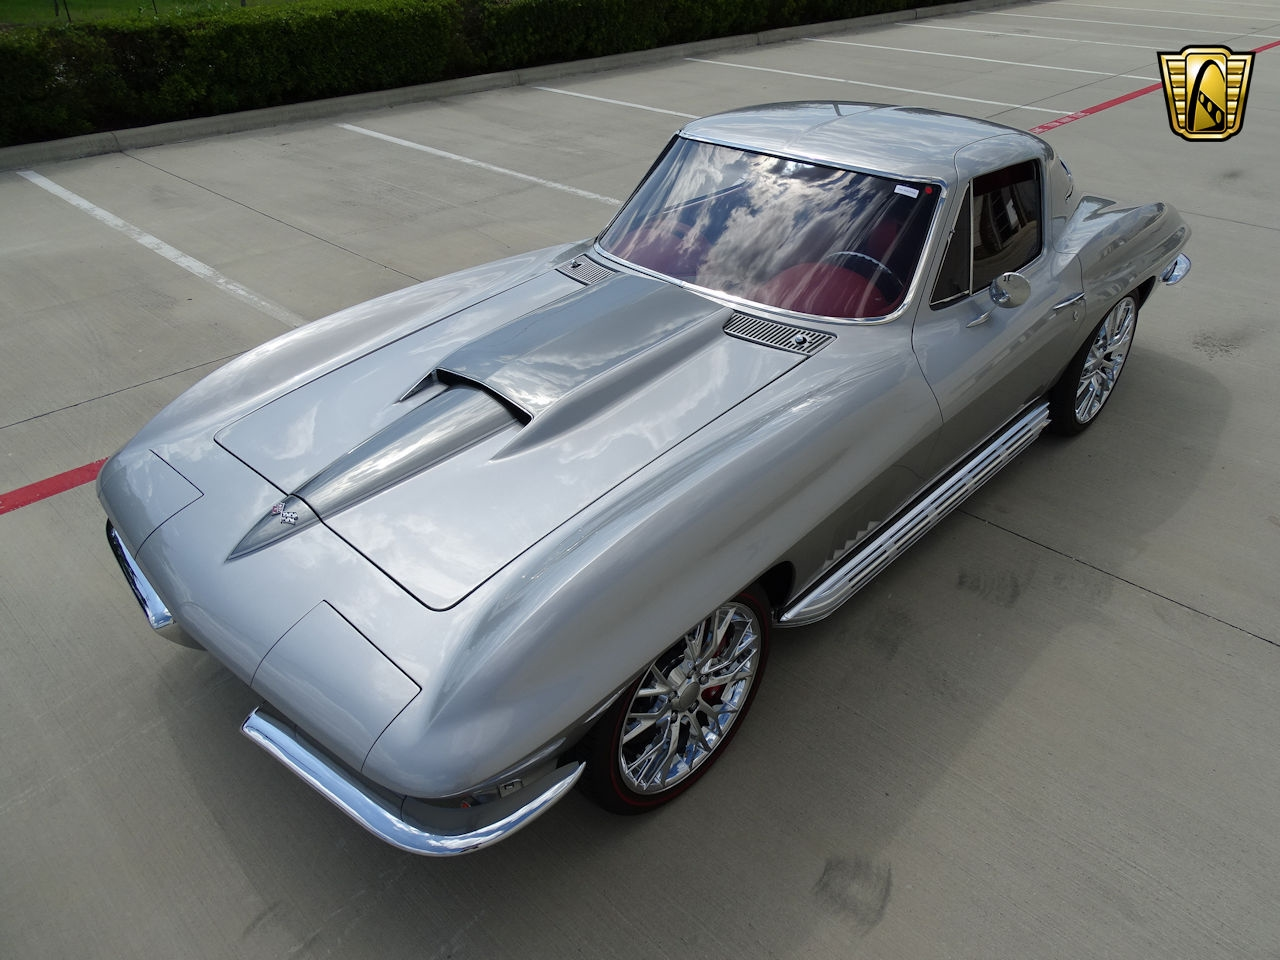 Check out this Jeff Hayes' built 1967 Chevrolet Corvette for sale in Houston, Texas!